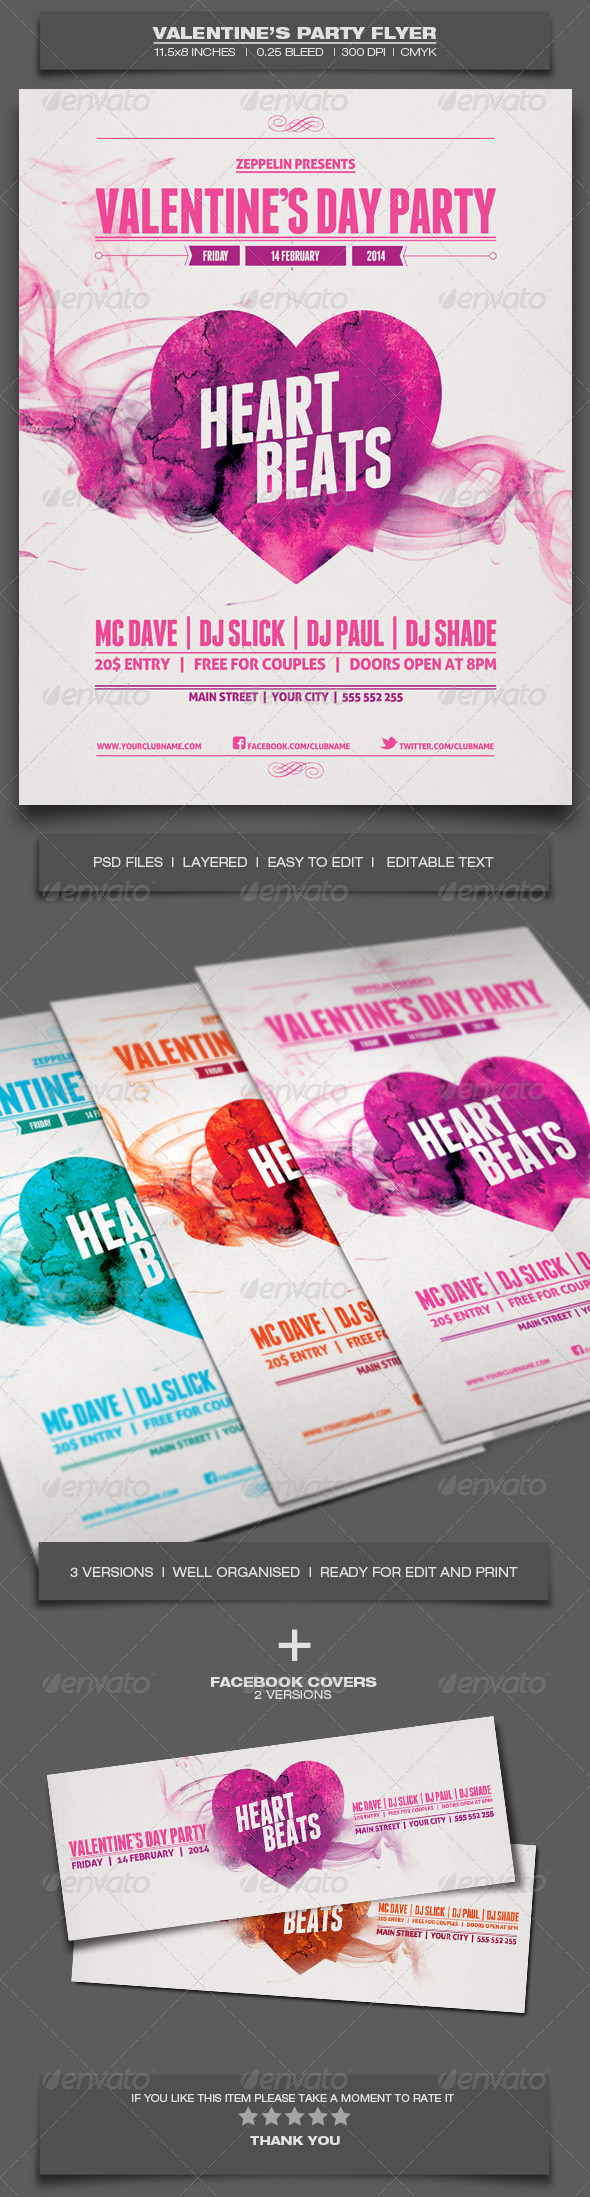 Valentine's Day Party - Event Flyer Template - Holidays Events